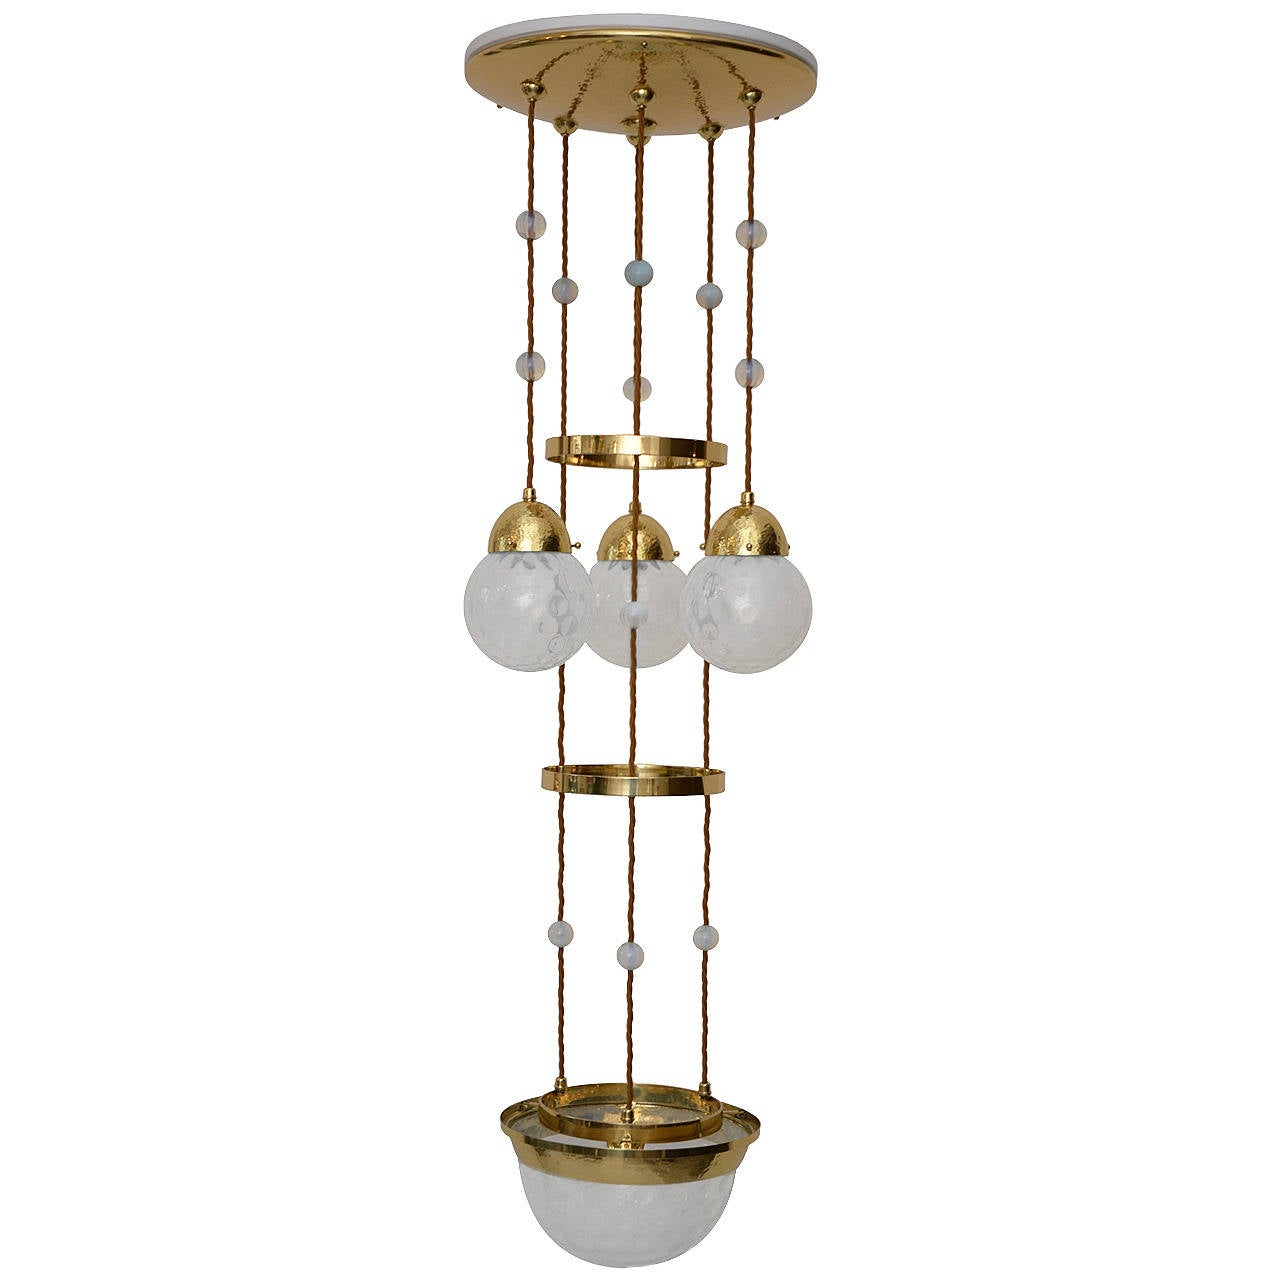 """Koloman Moser Attributed to Bakalowits & Sohne """"Secession"""" Chandelier"""